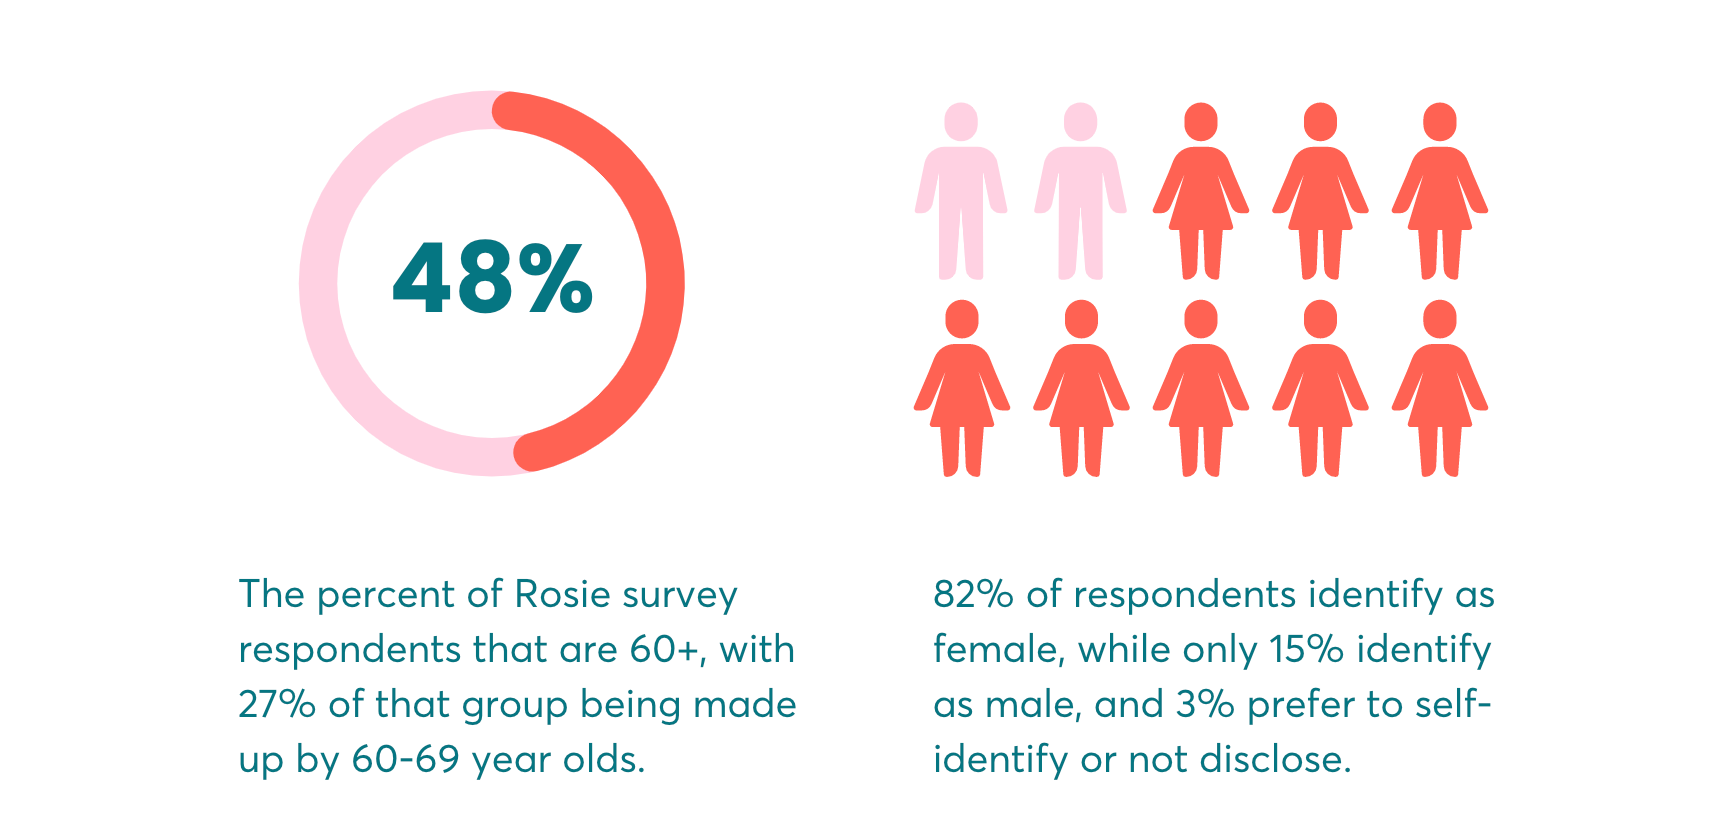 Graph showing 48% of respondents are 60 or older. Graphic showing male and female figures showing 82% of respondents are female and 15% are male